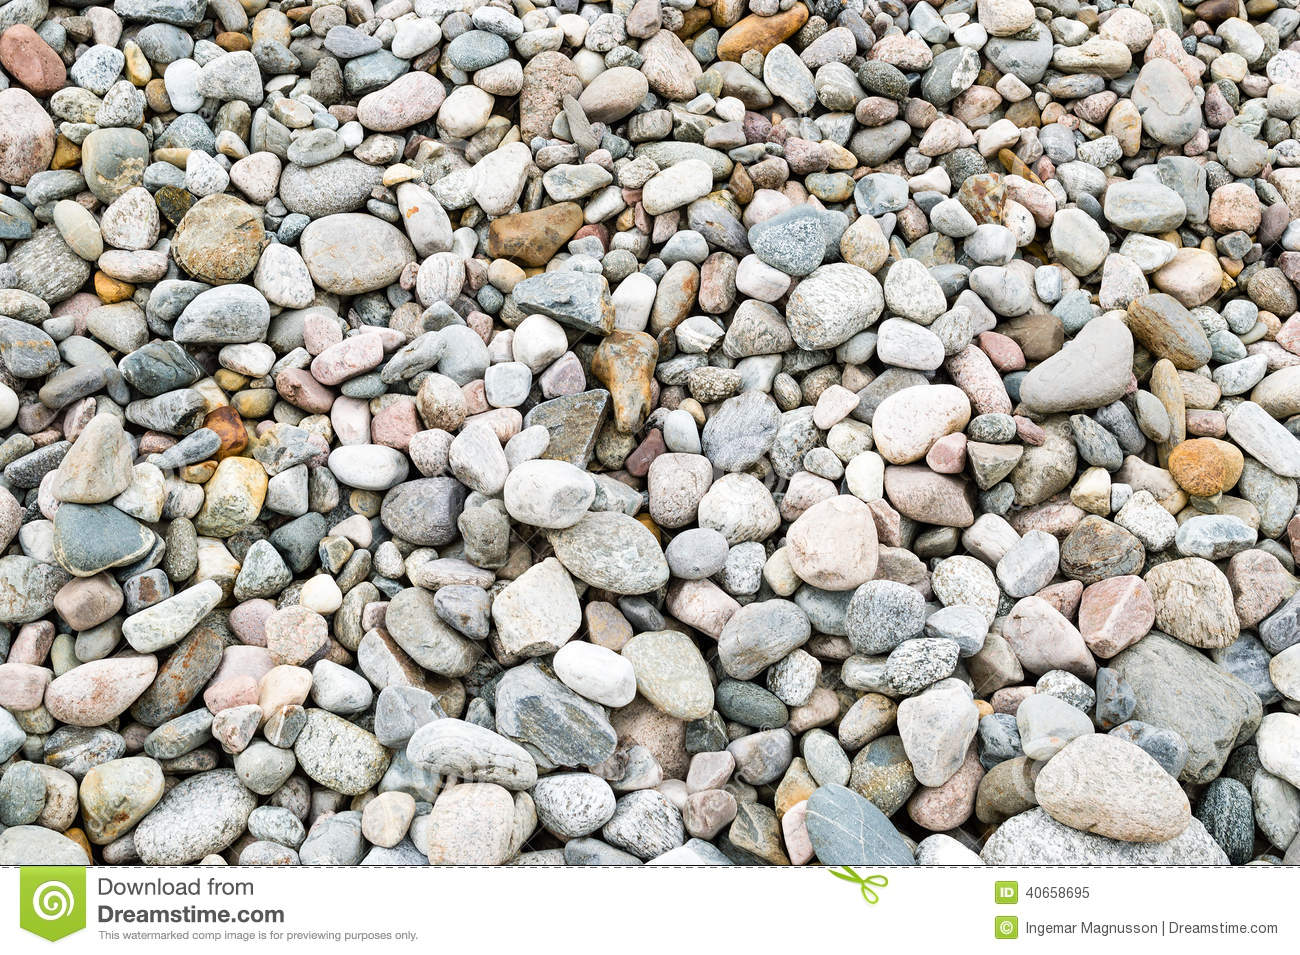 Is Gravel A Natural Resource